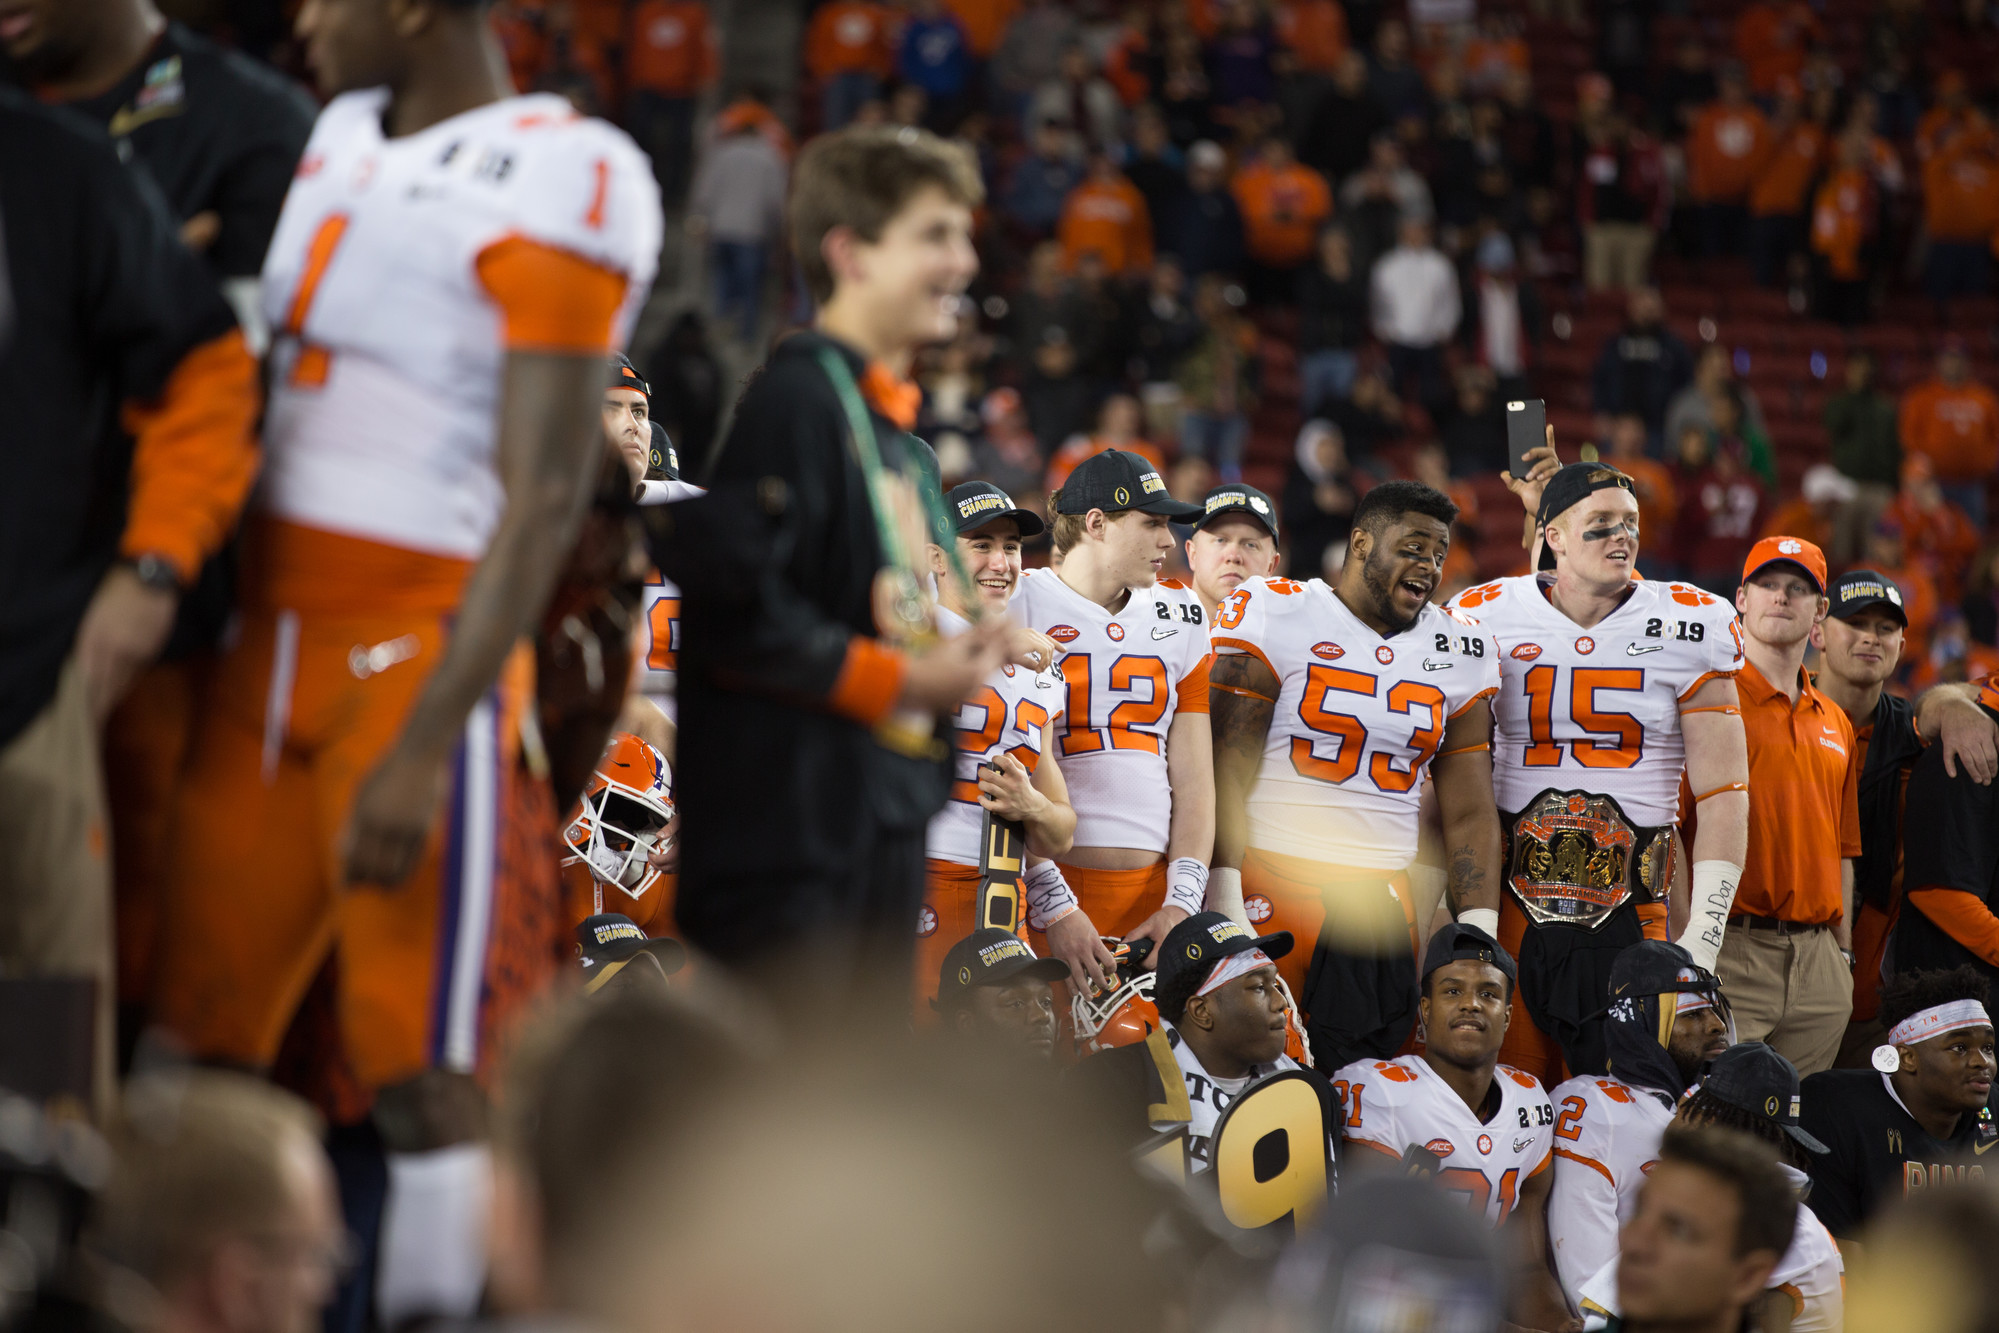 Clemson celebrate winning the 2019 CFP National Championship at Levi's Stadium in Santa Clara, California, on Monday, Jan. 7 after the Tigers routed Alabama 44-16.